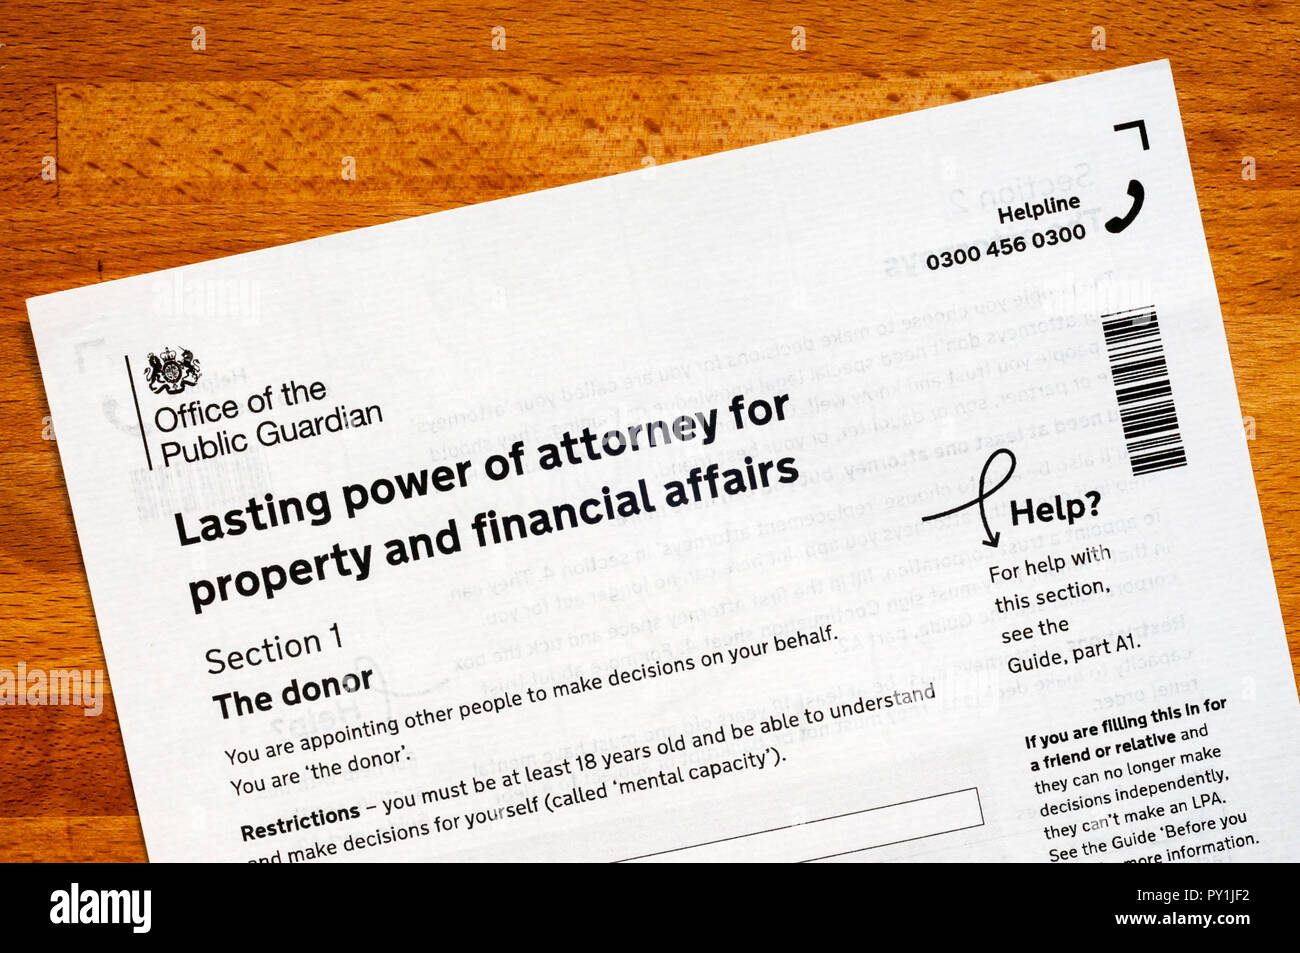 Lasting Power of Attorney for property and financial affairs. - Stock Image